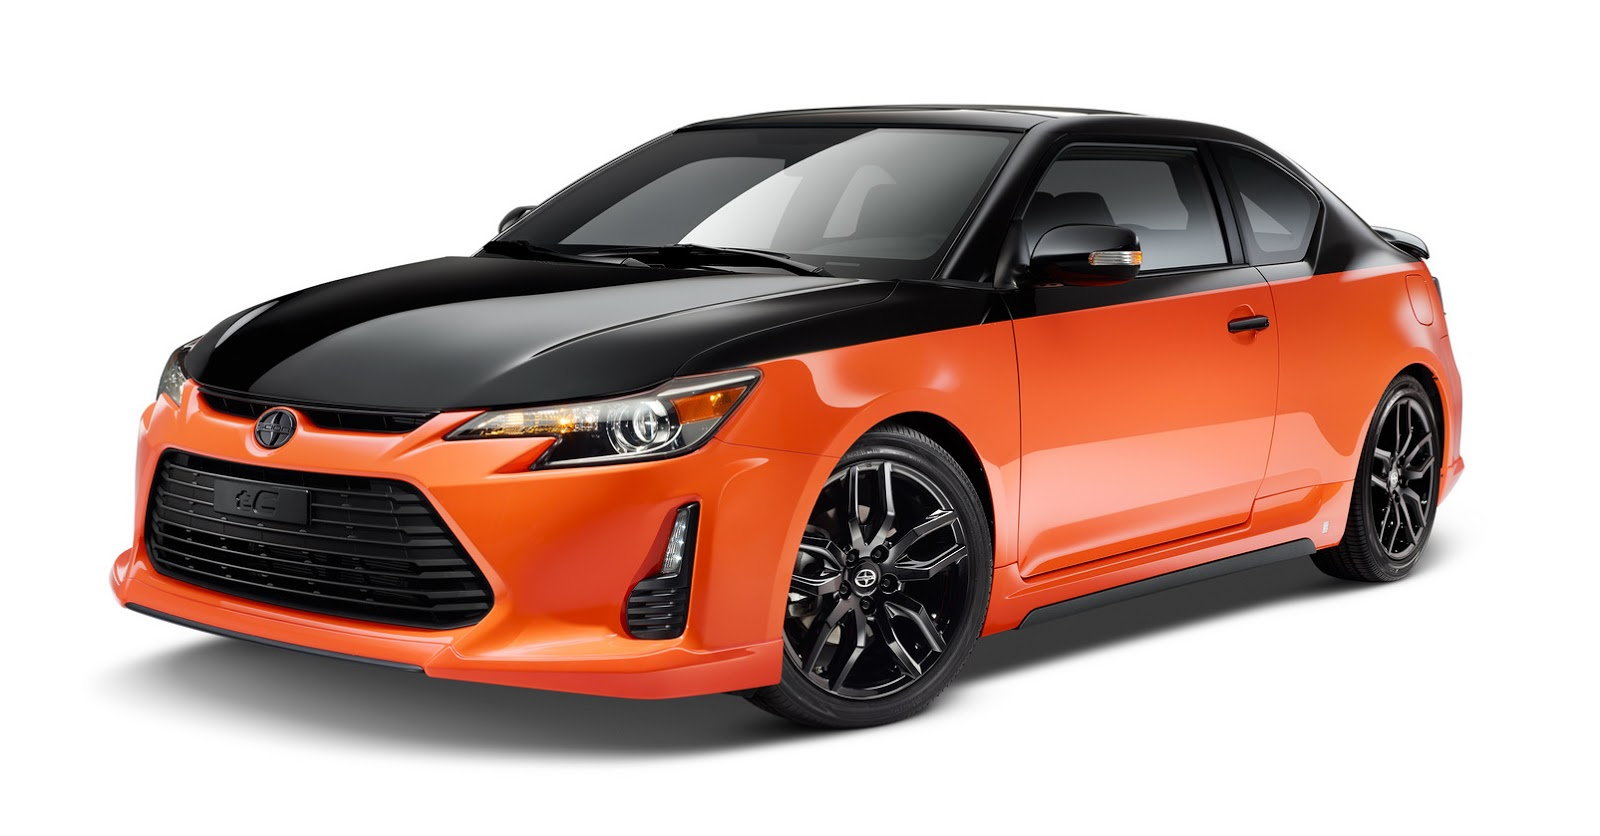 scion gives tc coupe a two tone paint job for rs 9 0. Black Bedroom Furniture Sets. Home Design Ideas